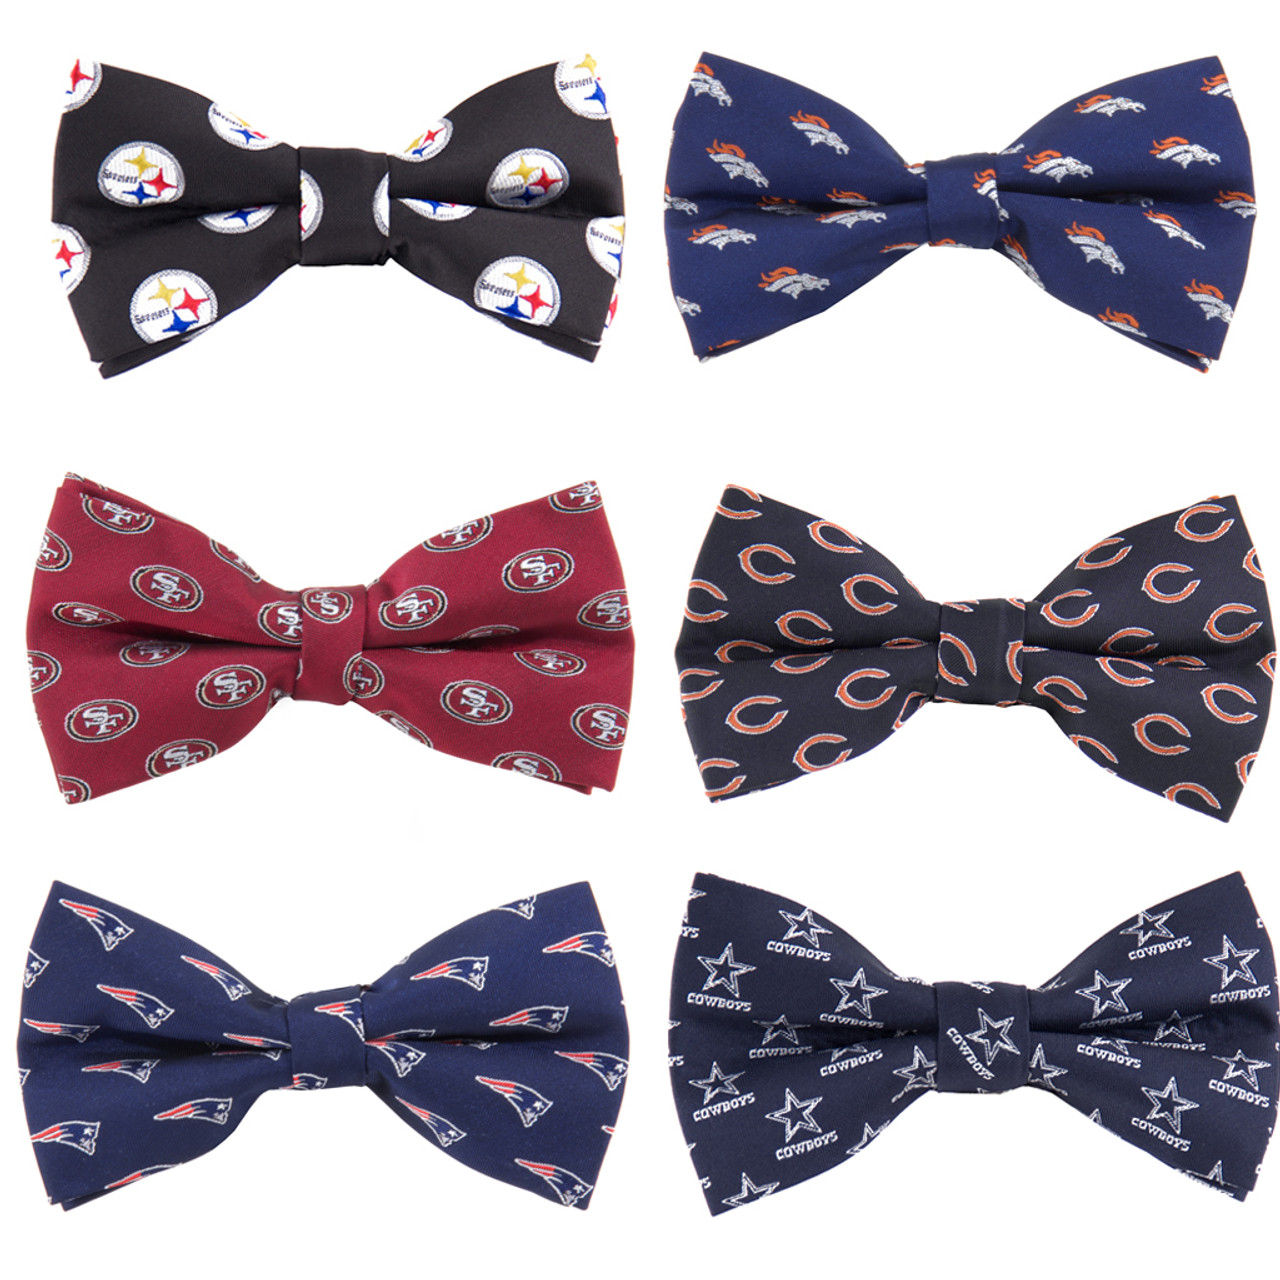 2df2dffb0 NFL Football Team Bow Ties